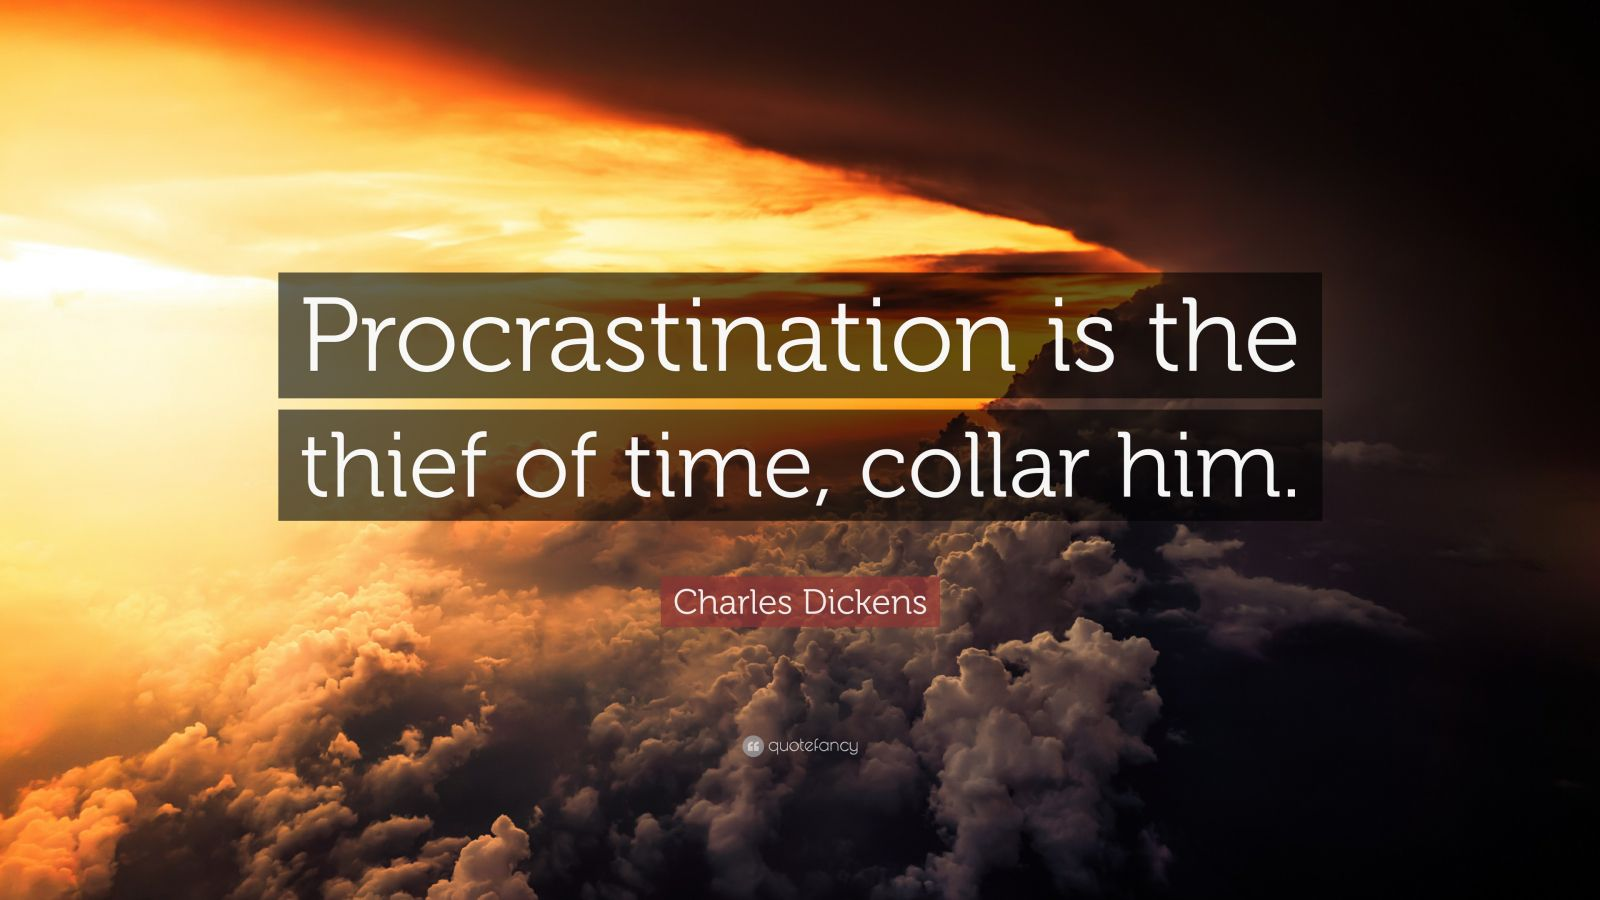 short essay on procrastination is the thief of time The thief of time: philosophical essays on procrastination - ebook written by chrisoula andreou, mark d white read this book using google play books app on your pc, android, ios devices download for offline reading, highlight, bookmark or take notes while you read the thief of time: philosophical essays on procrastination.